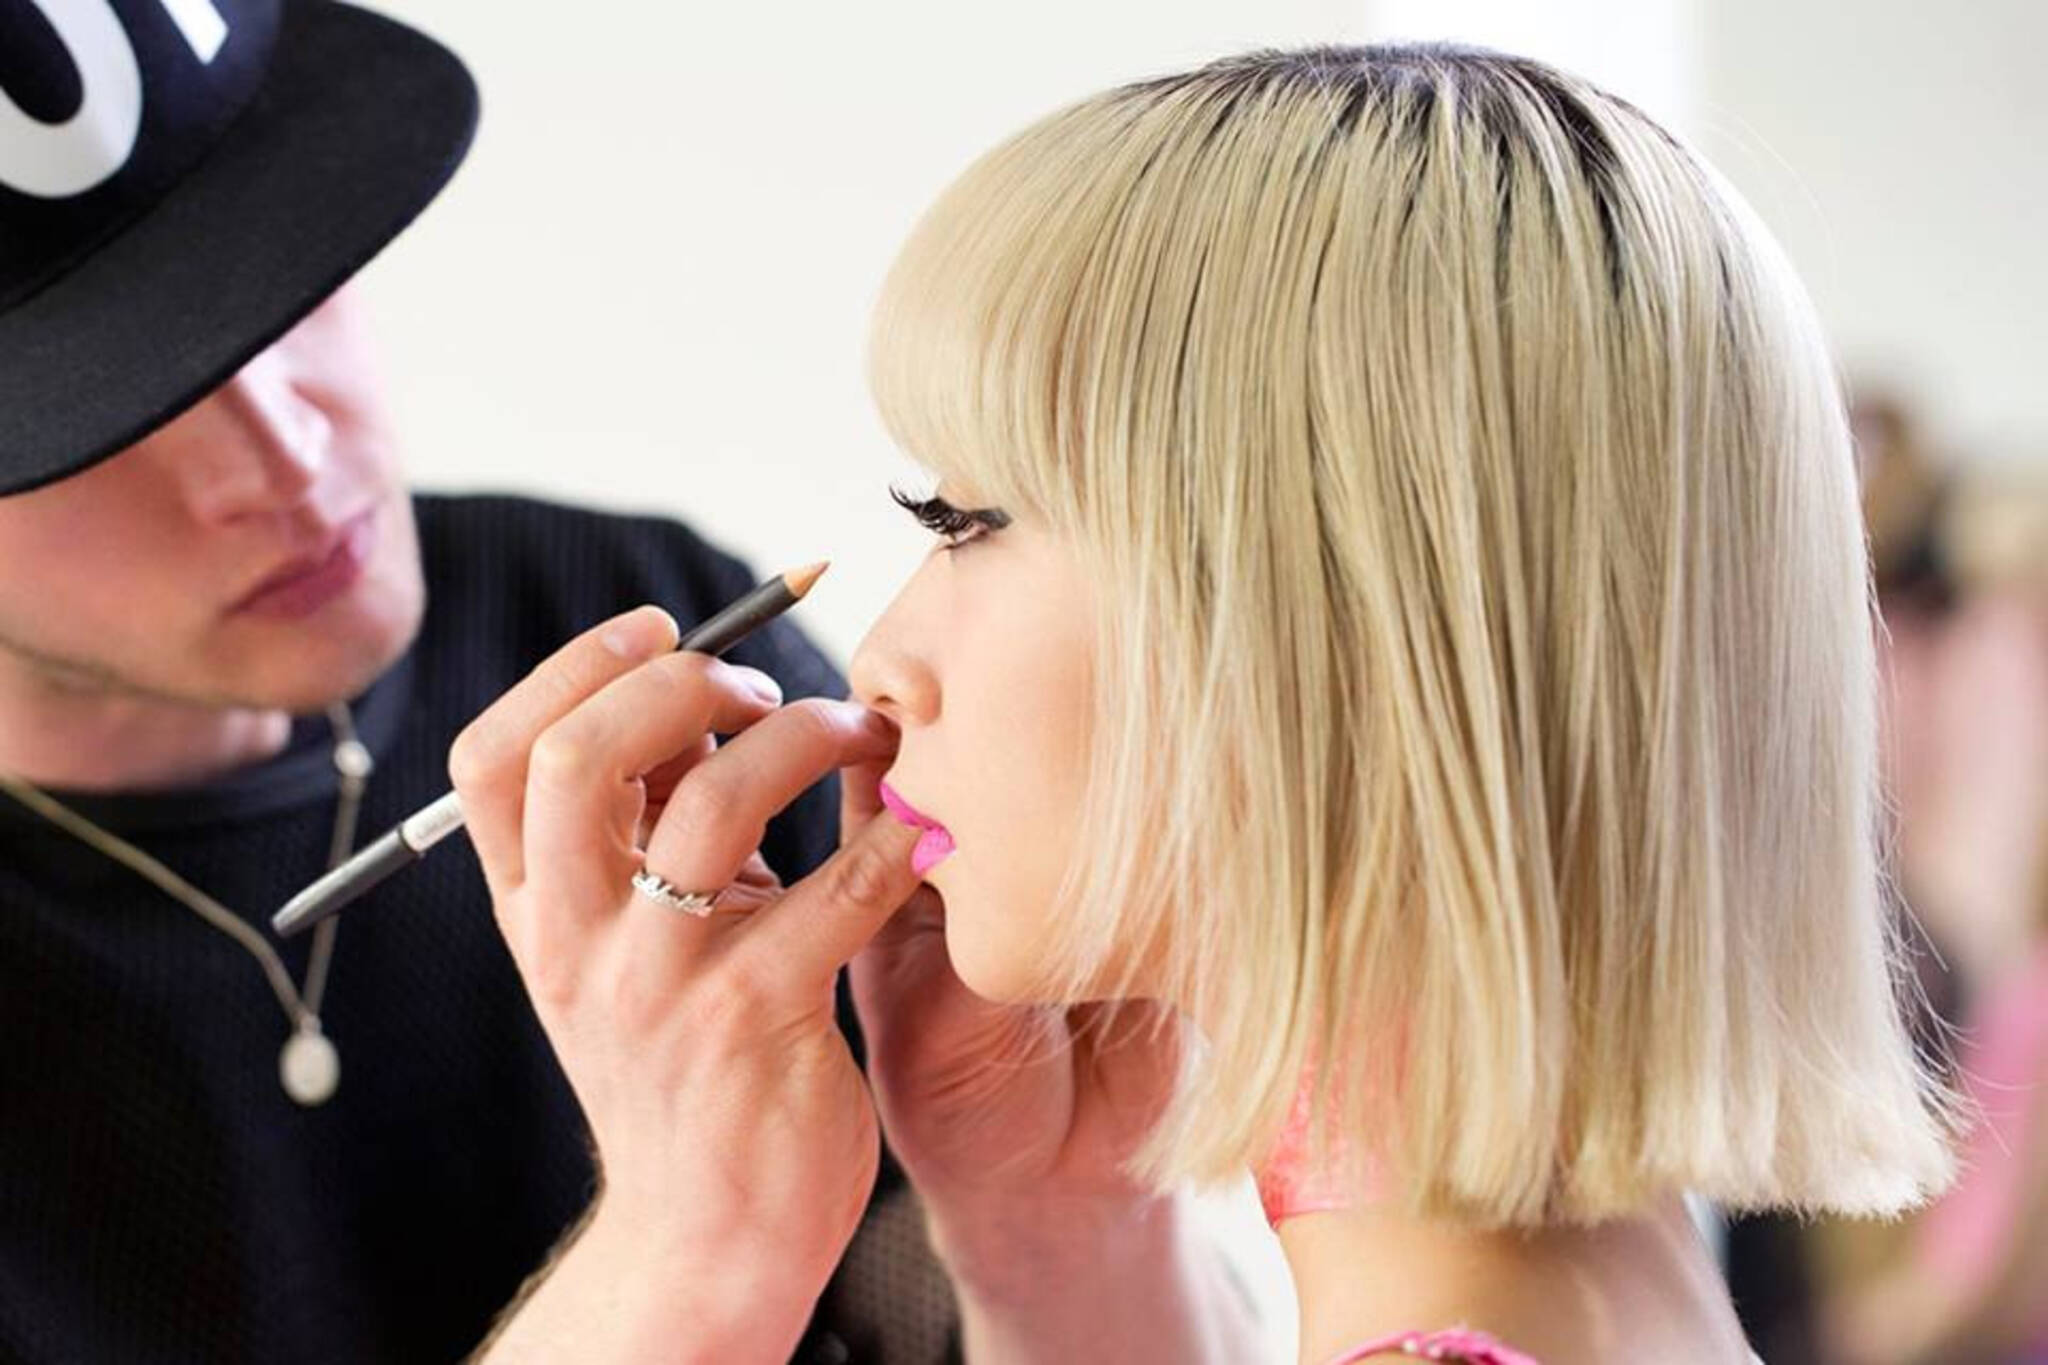 The Top 10 Places To Get Your Makeup Done In Toronto